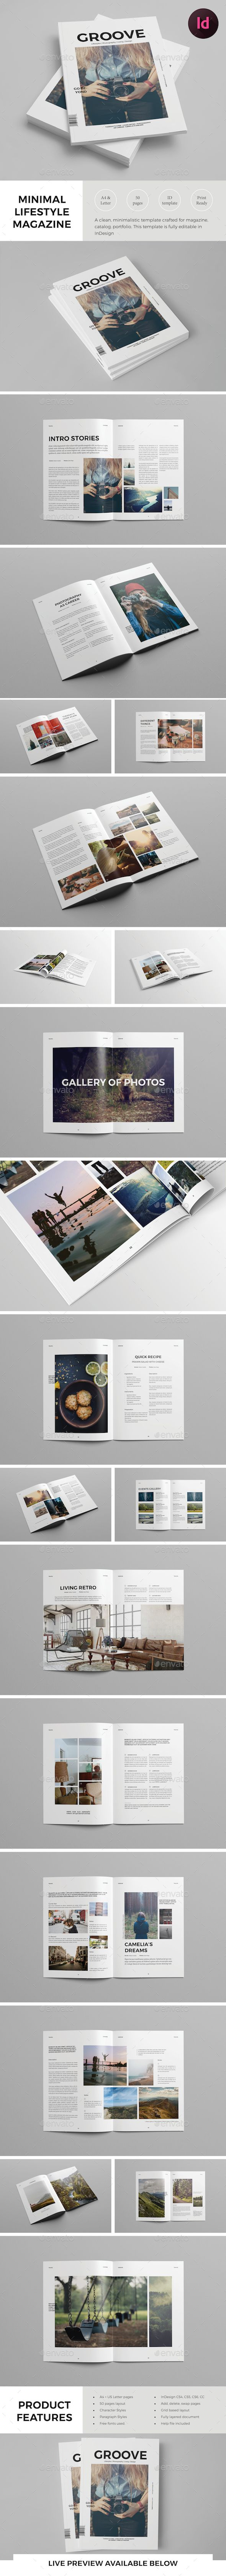 Simple Lifestyle Magazine template - Magazines Print Templates